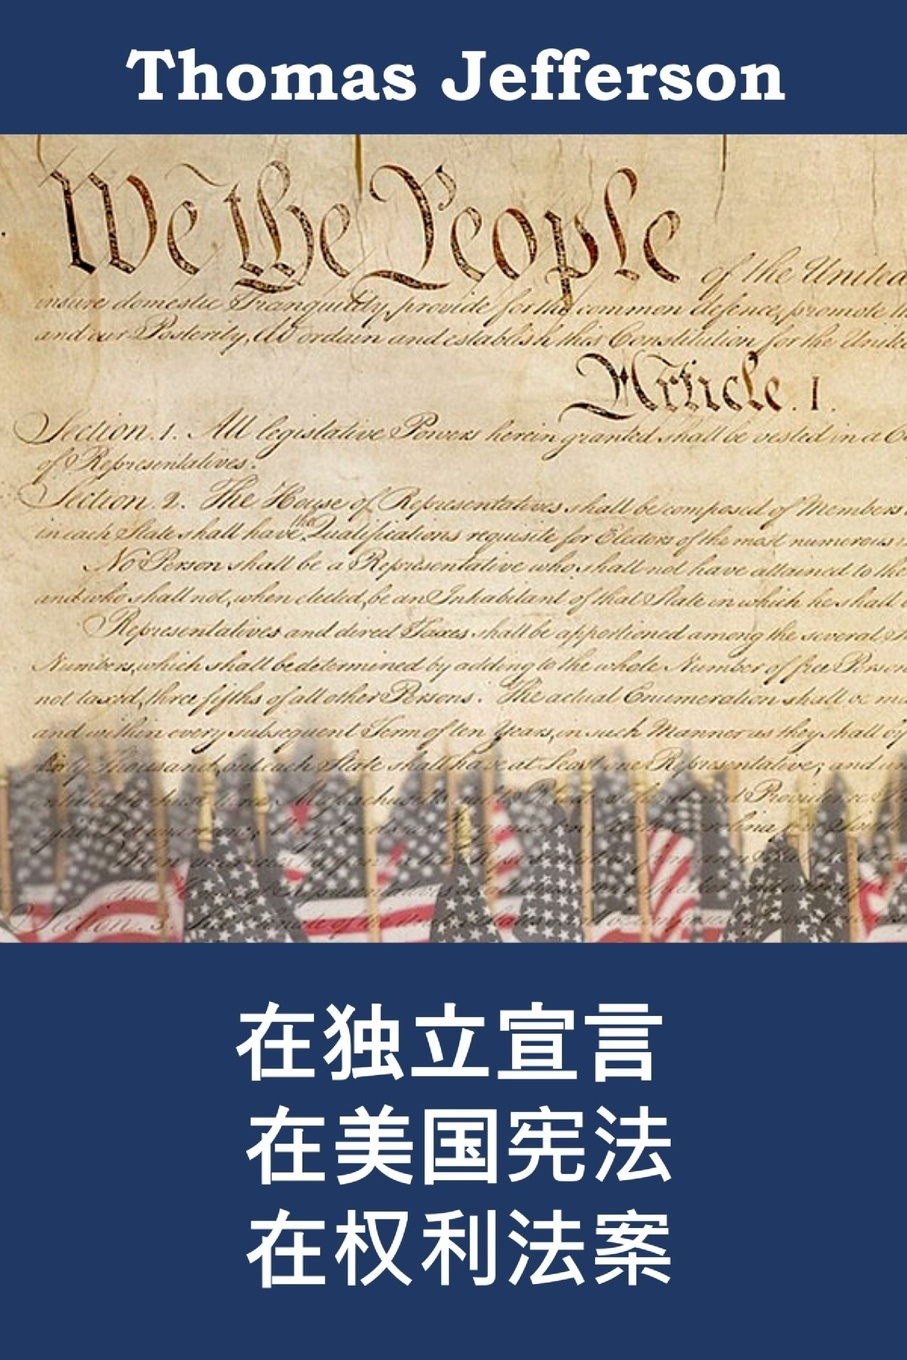 Thomas Jefferson ???????????,???????. Declaration of Independence, Constitution, and bill of Rights of the United States of America, Chinese edition arduino编程指南 75个智能硬件程序设计技巧